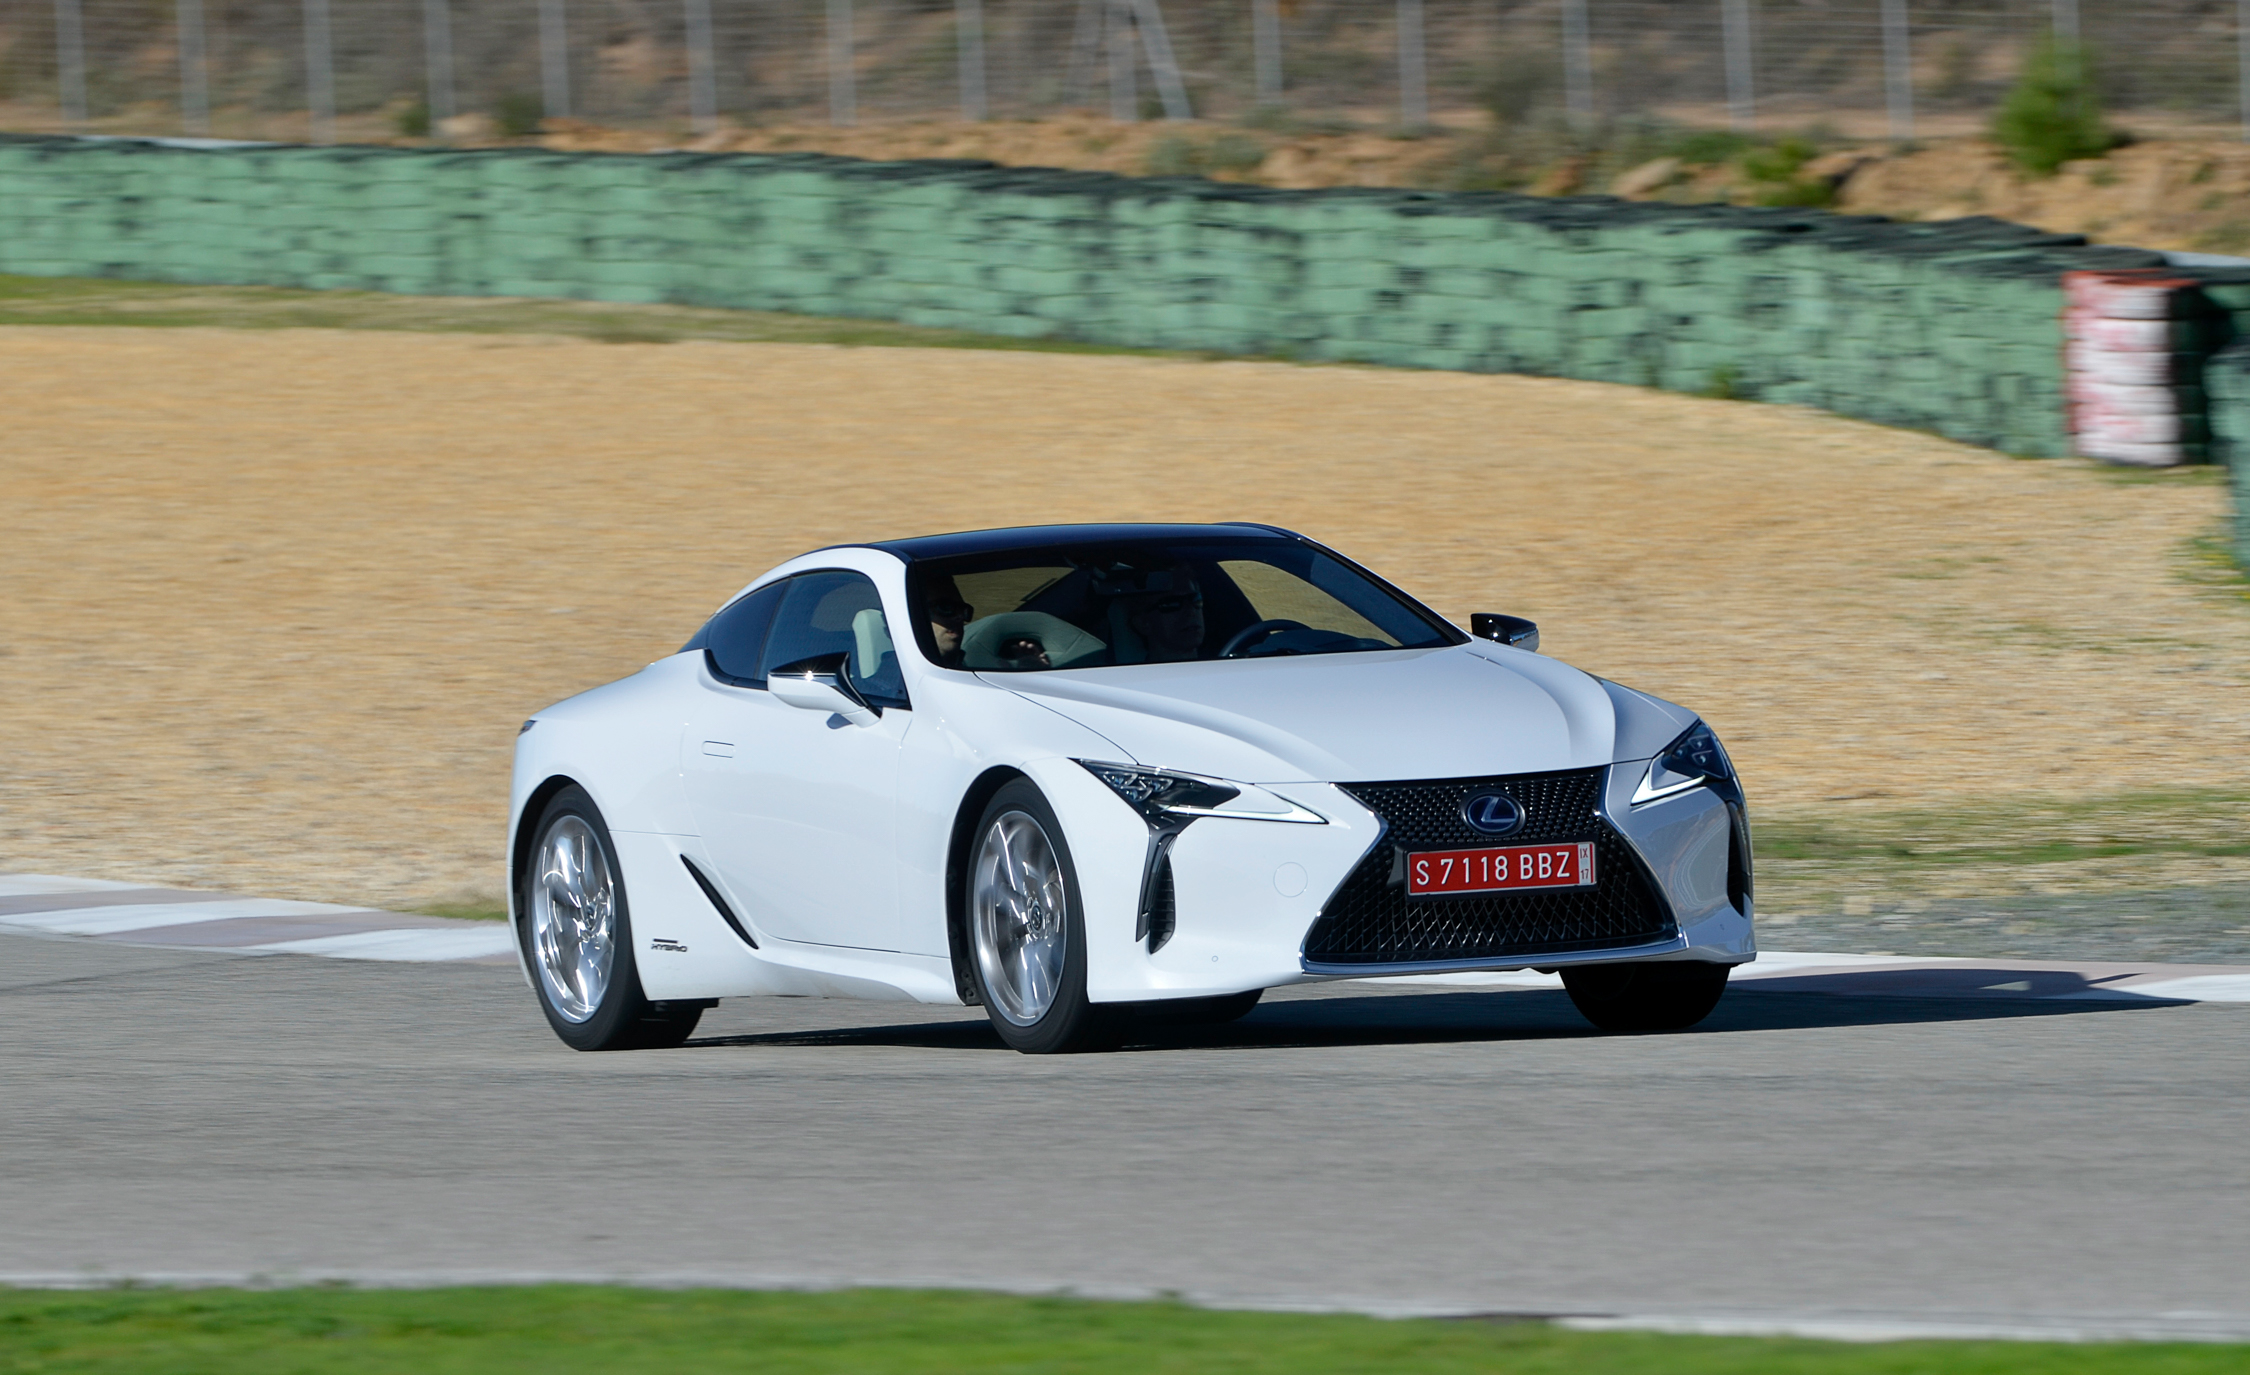 2018 Lexus Lc 500h White Test Drive (Photo 65 of 84)